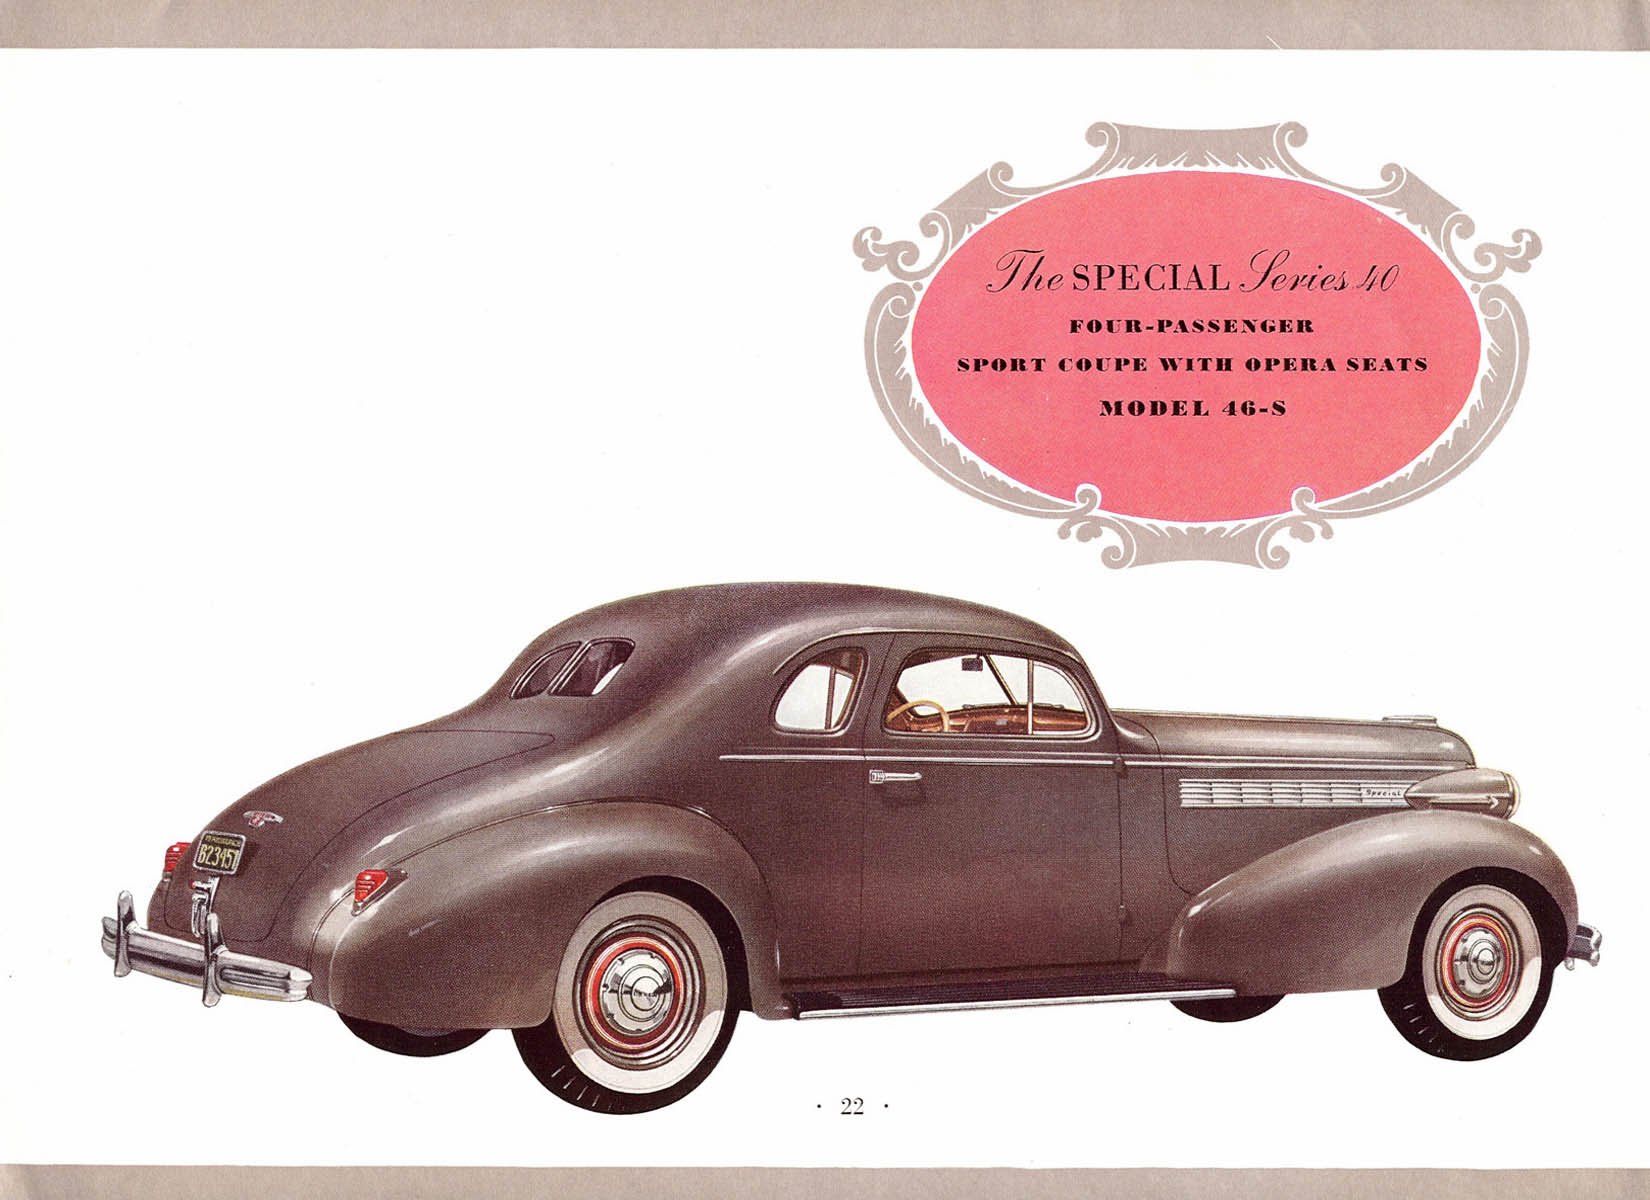 Car Image S >> 1938 Buick brochure